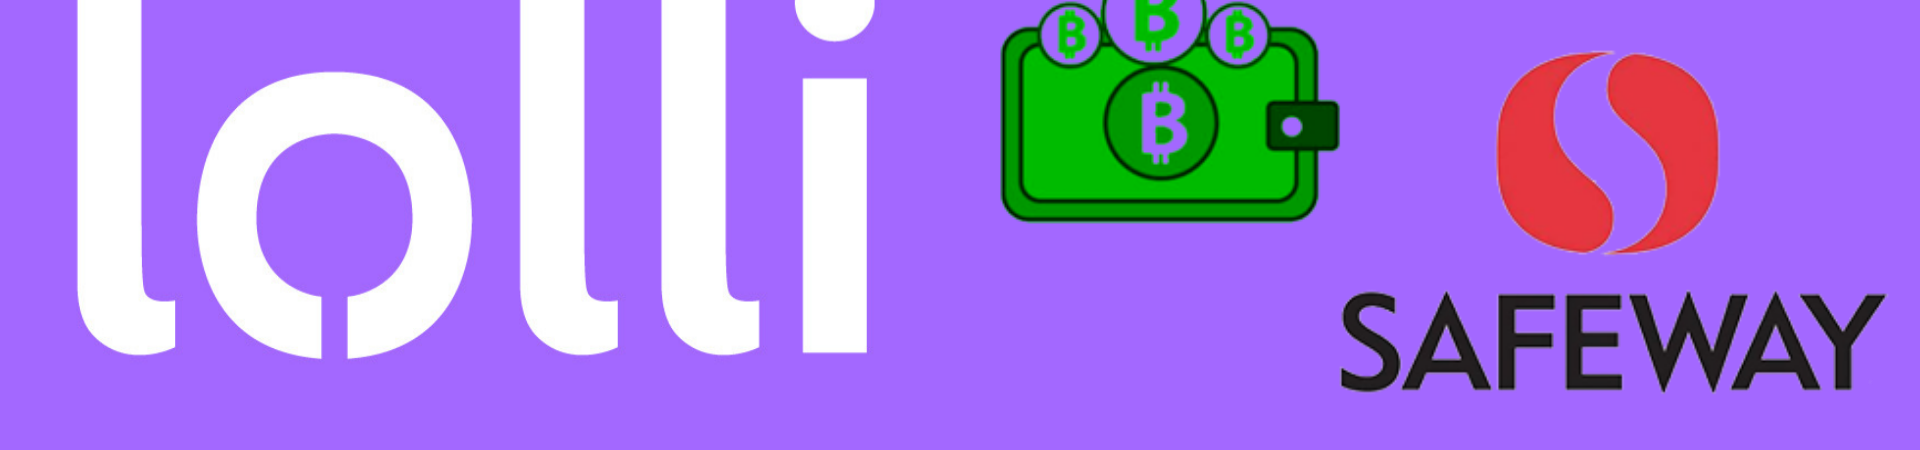 Bitcoin Rewards Shopping App Lolli collaborated with Safeway